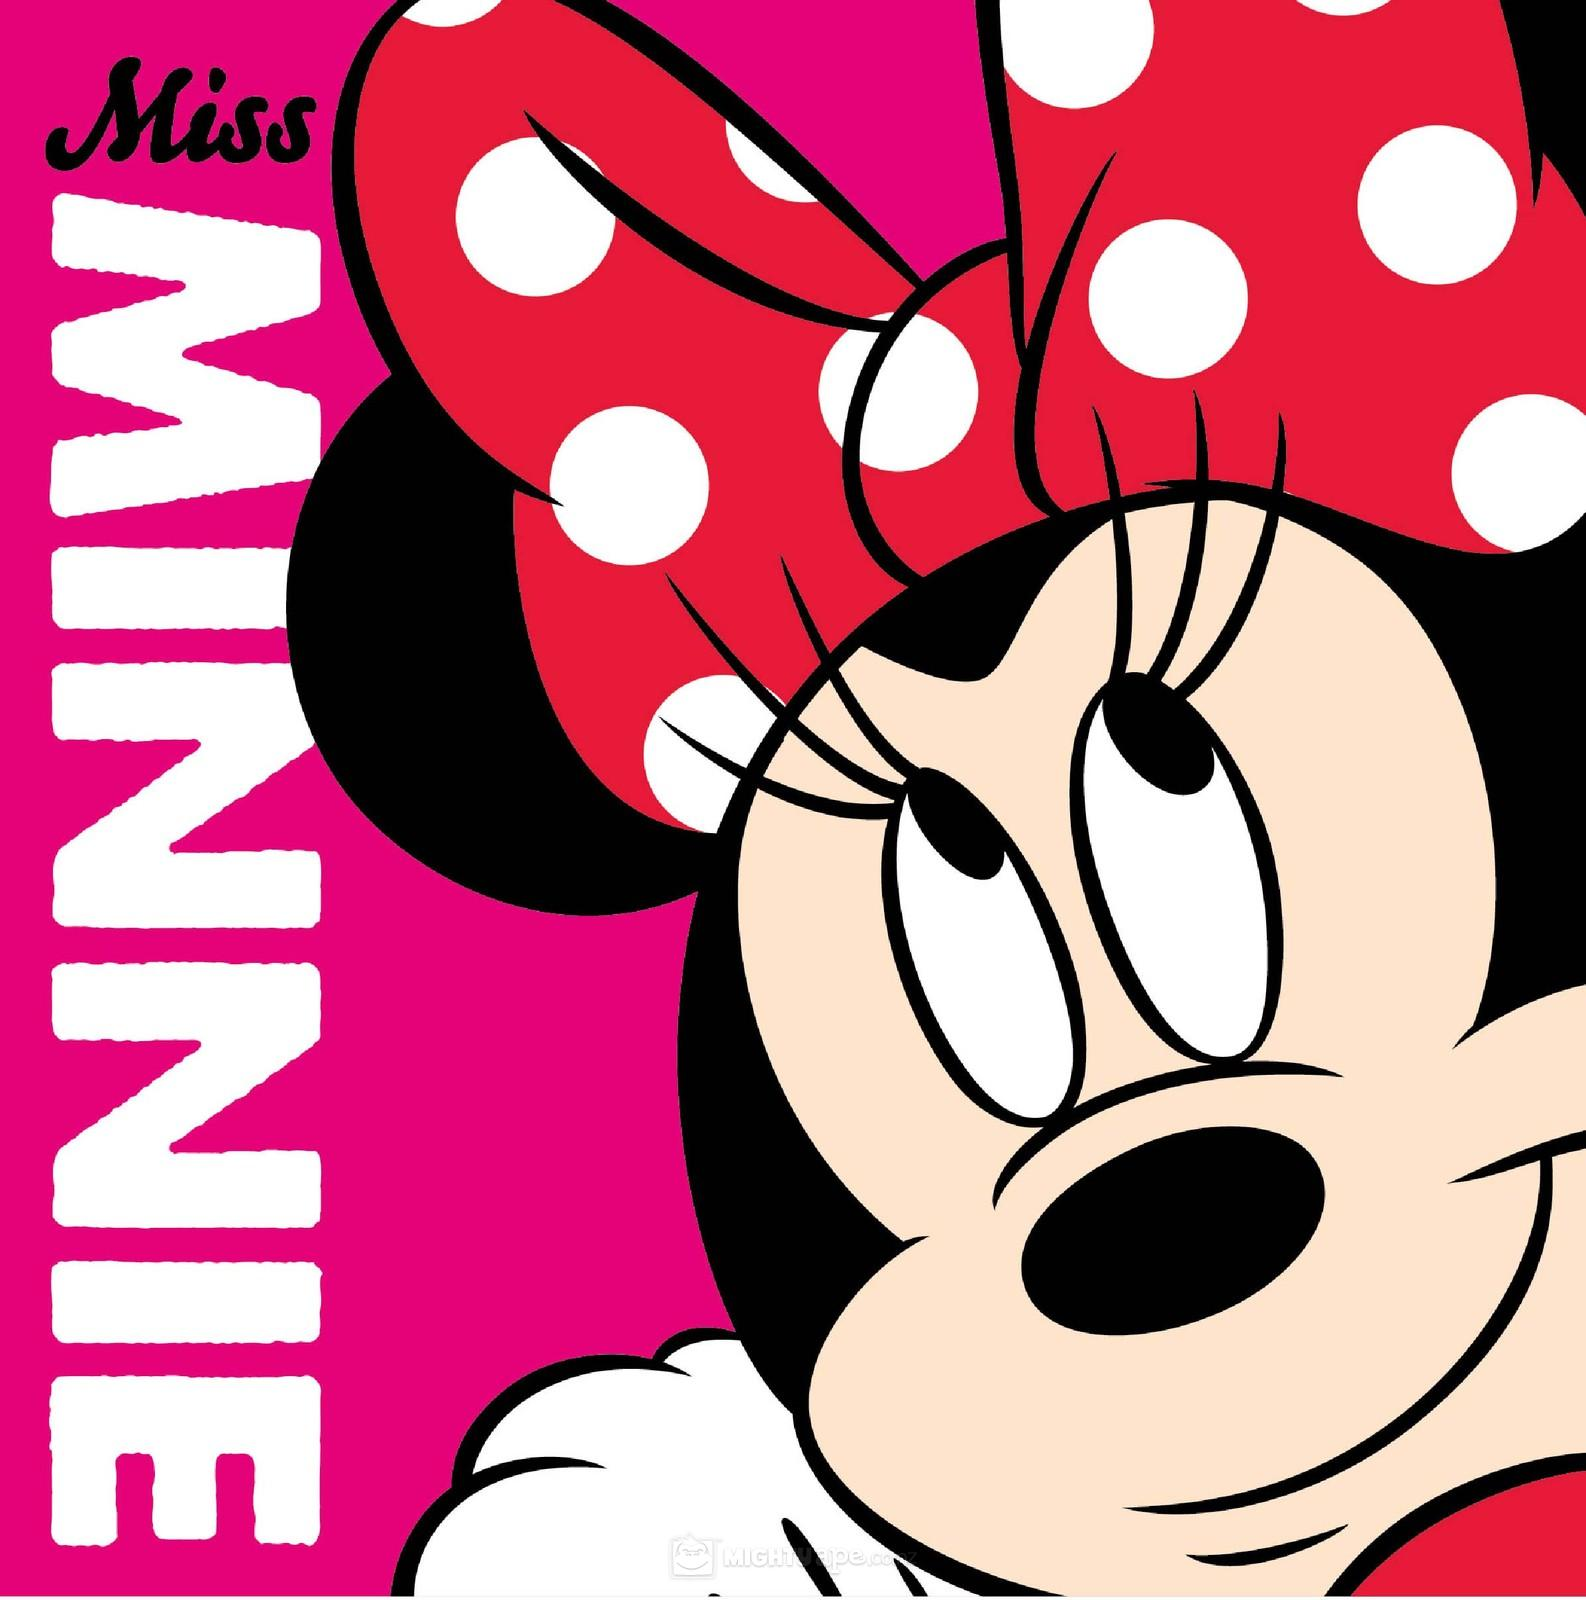 Red Minnie Mouse Face Minnie Mouse Magic Face Cloth 15397239 5 Jpeg